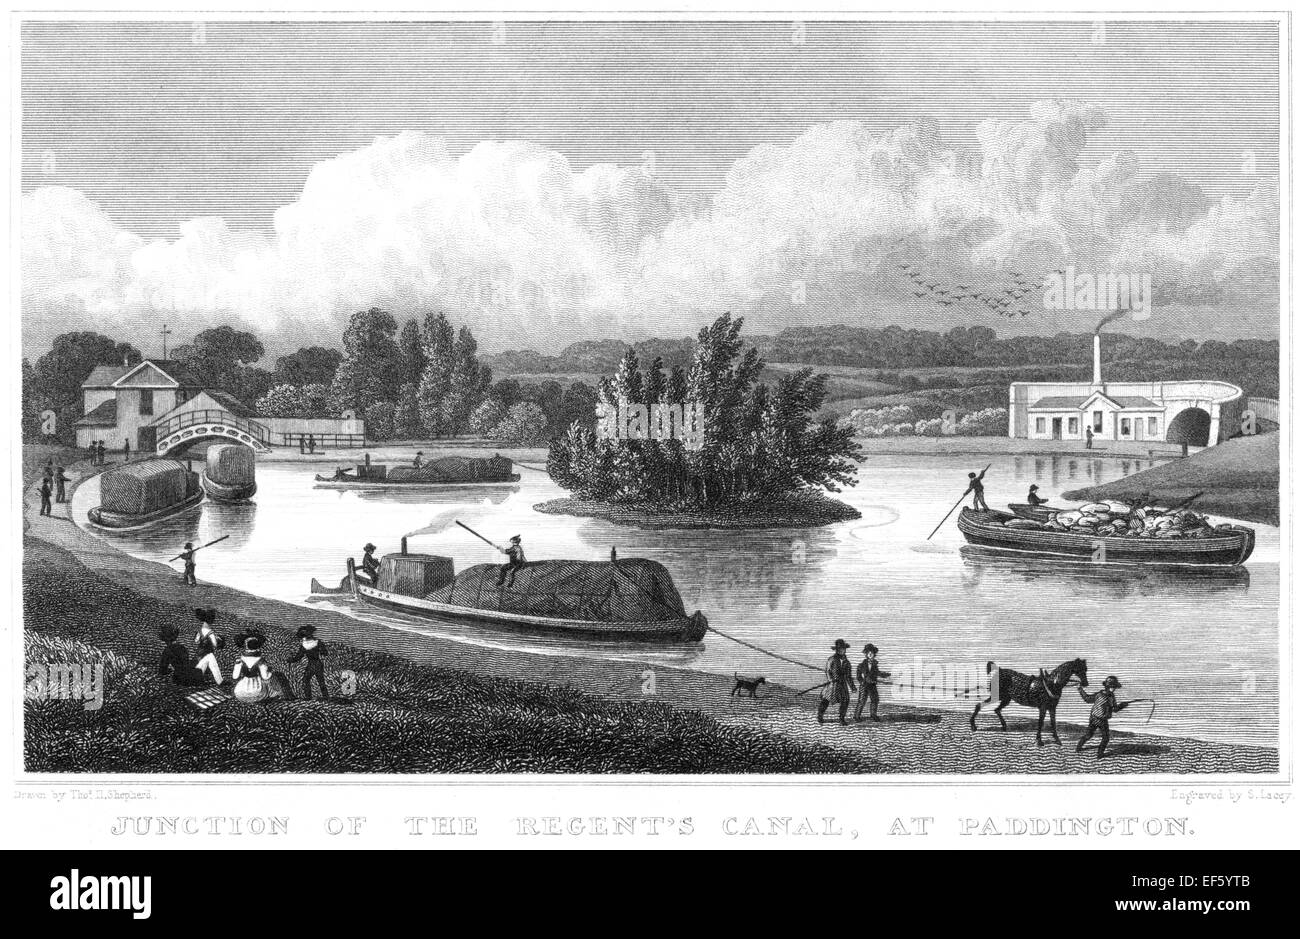 An engraving of the Junction of the Regents Canal, at Paddington scanned at high resolution from a publication printed Stock Photo